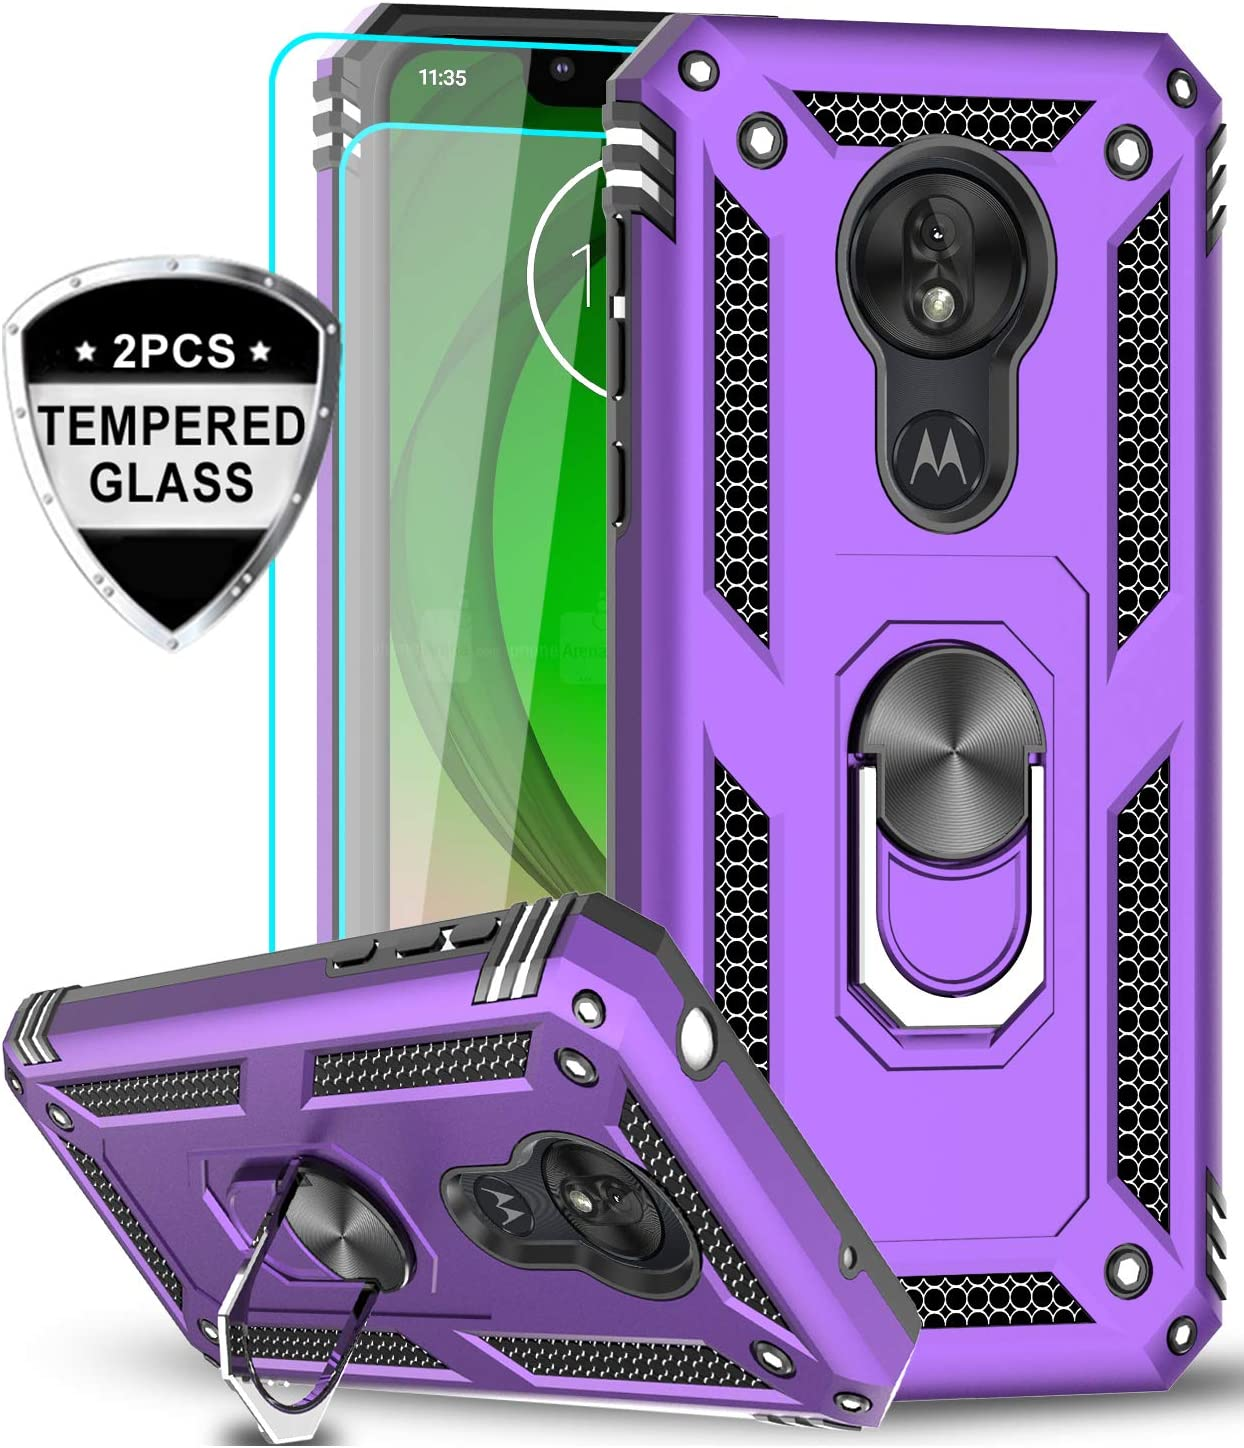 LeYi Moto G7 Play Case (Not Fit Moto G7) with Tempered Glass Screen Protector [2 Pack], Military Grade Defender Phone Case with Magnetic Car Mount Kickstand for Moto G7 Play, Purple